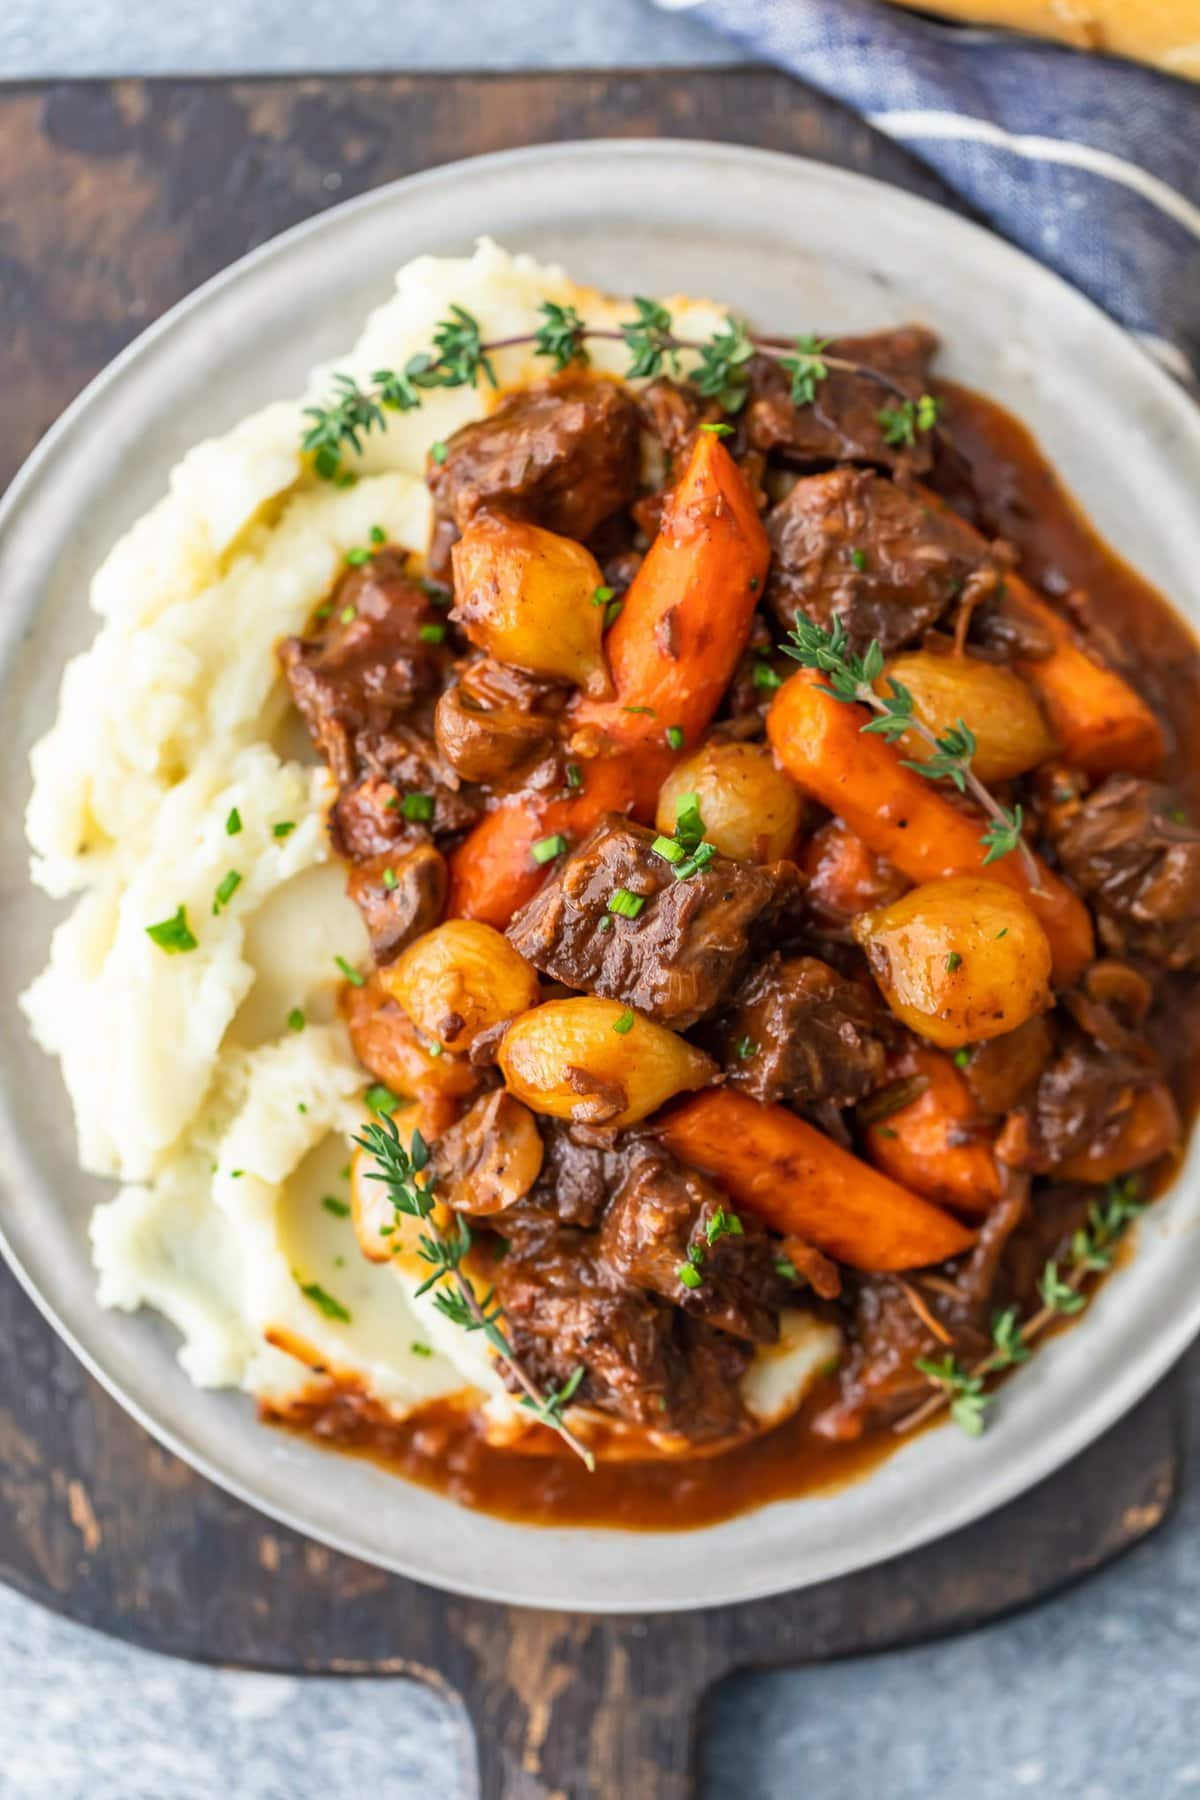 a plate of beef bourguignon with mashed potatoes